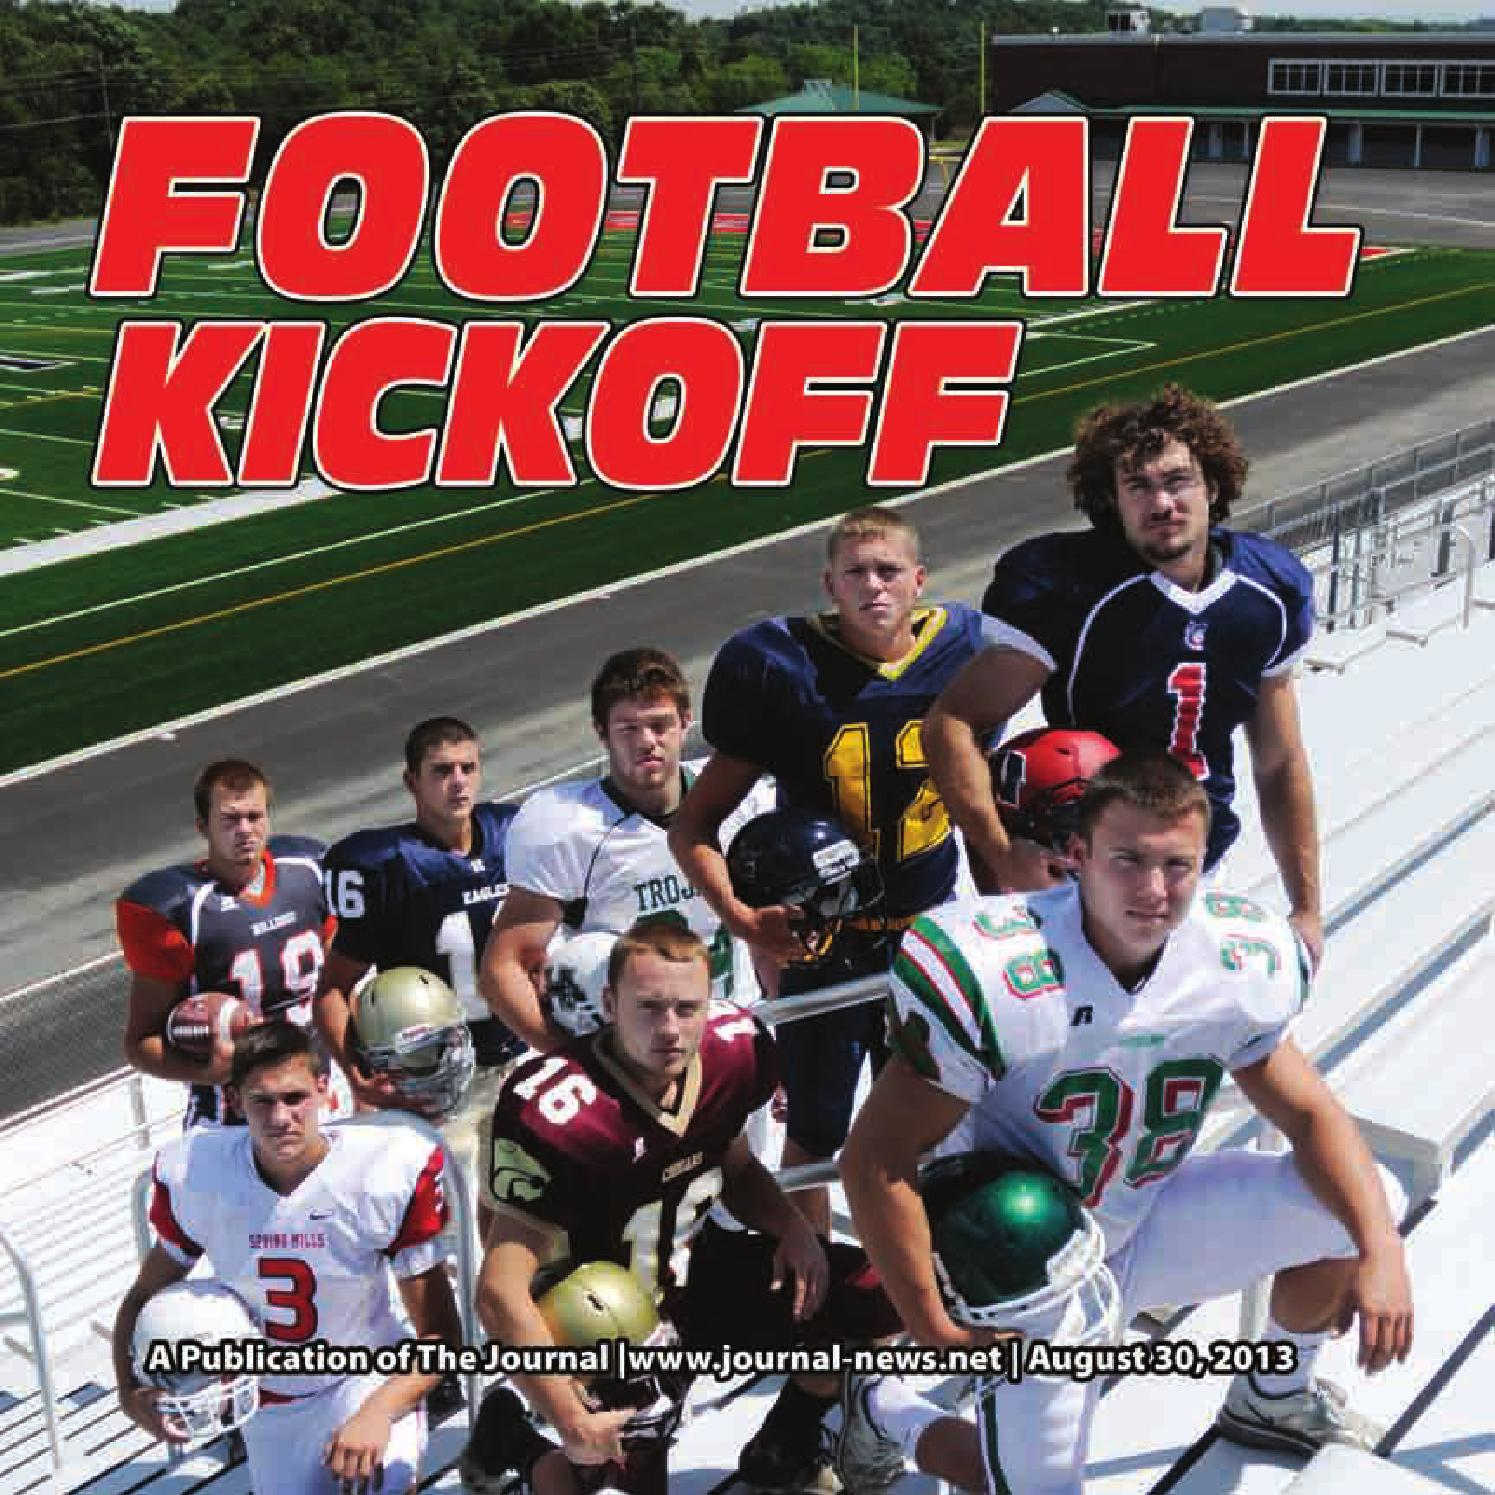 Football kick offx by ckinsler - issuu 2aca7f149